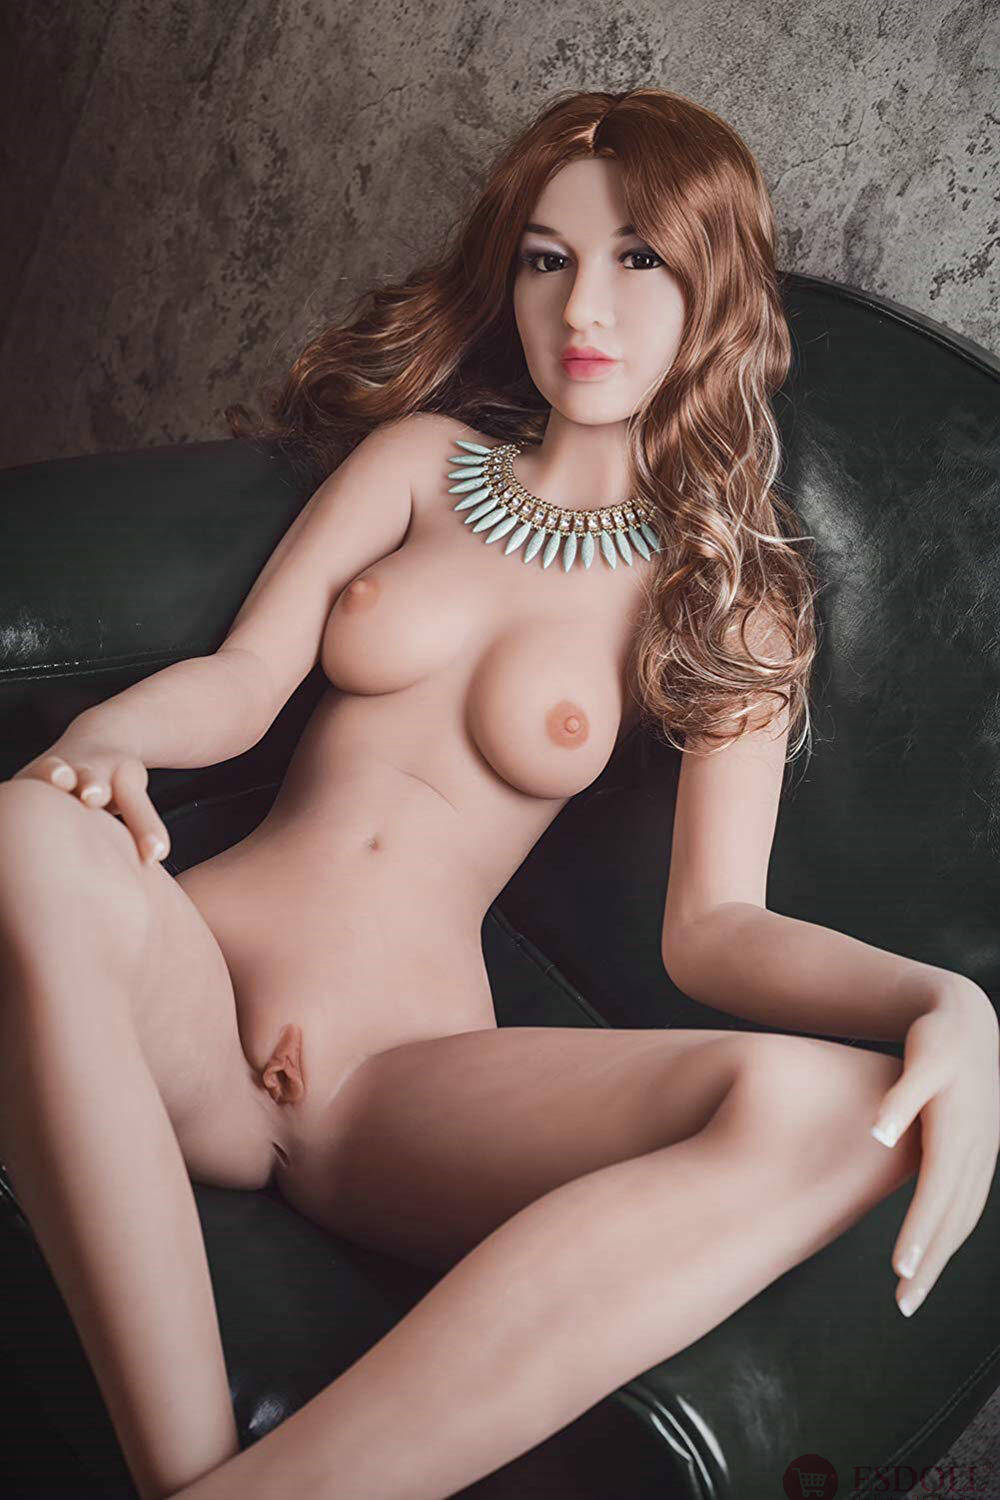 Full Size Love Doll 158cm Realistic Sex Doll